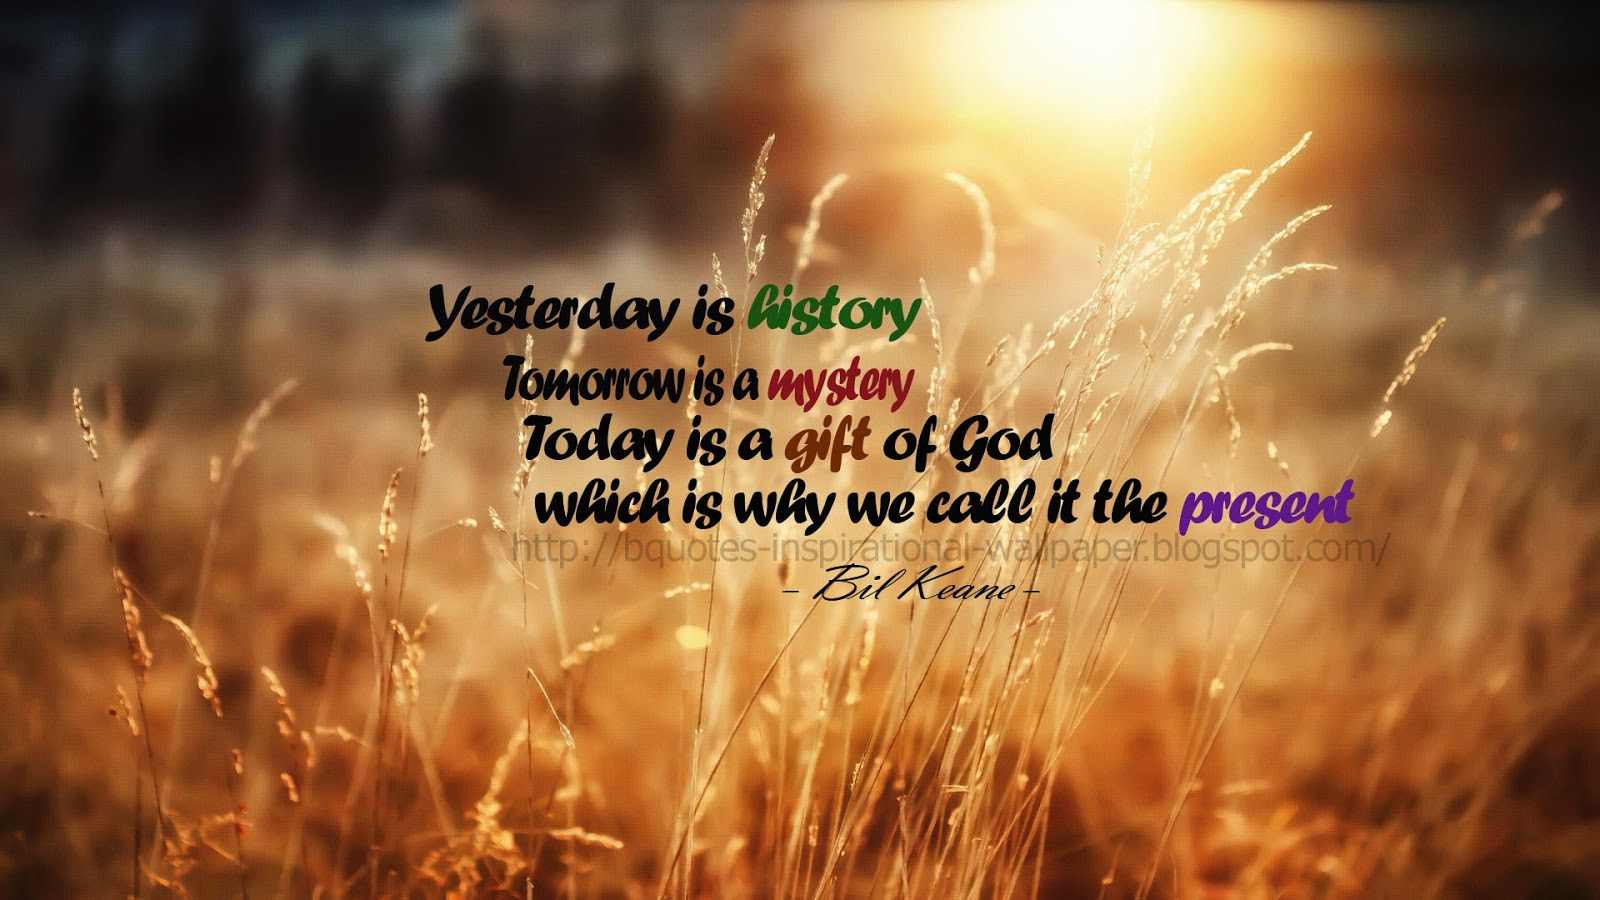 And Inspirational Wallpapers Yesterday is history   Quote Wallpaper 1600x900